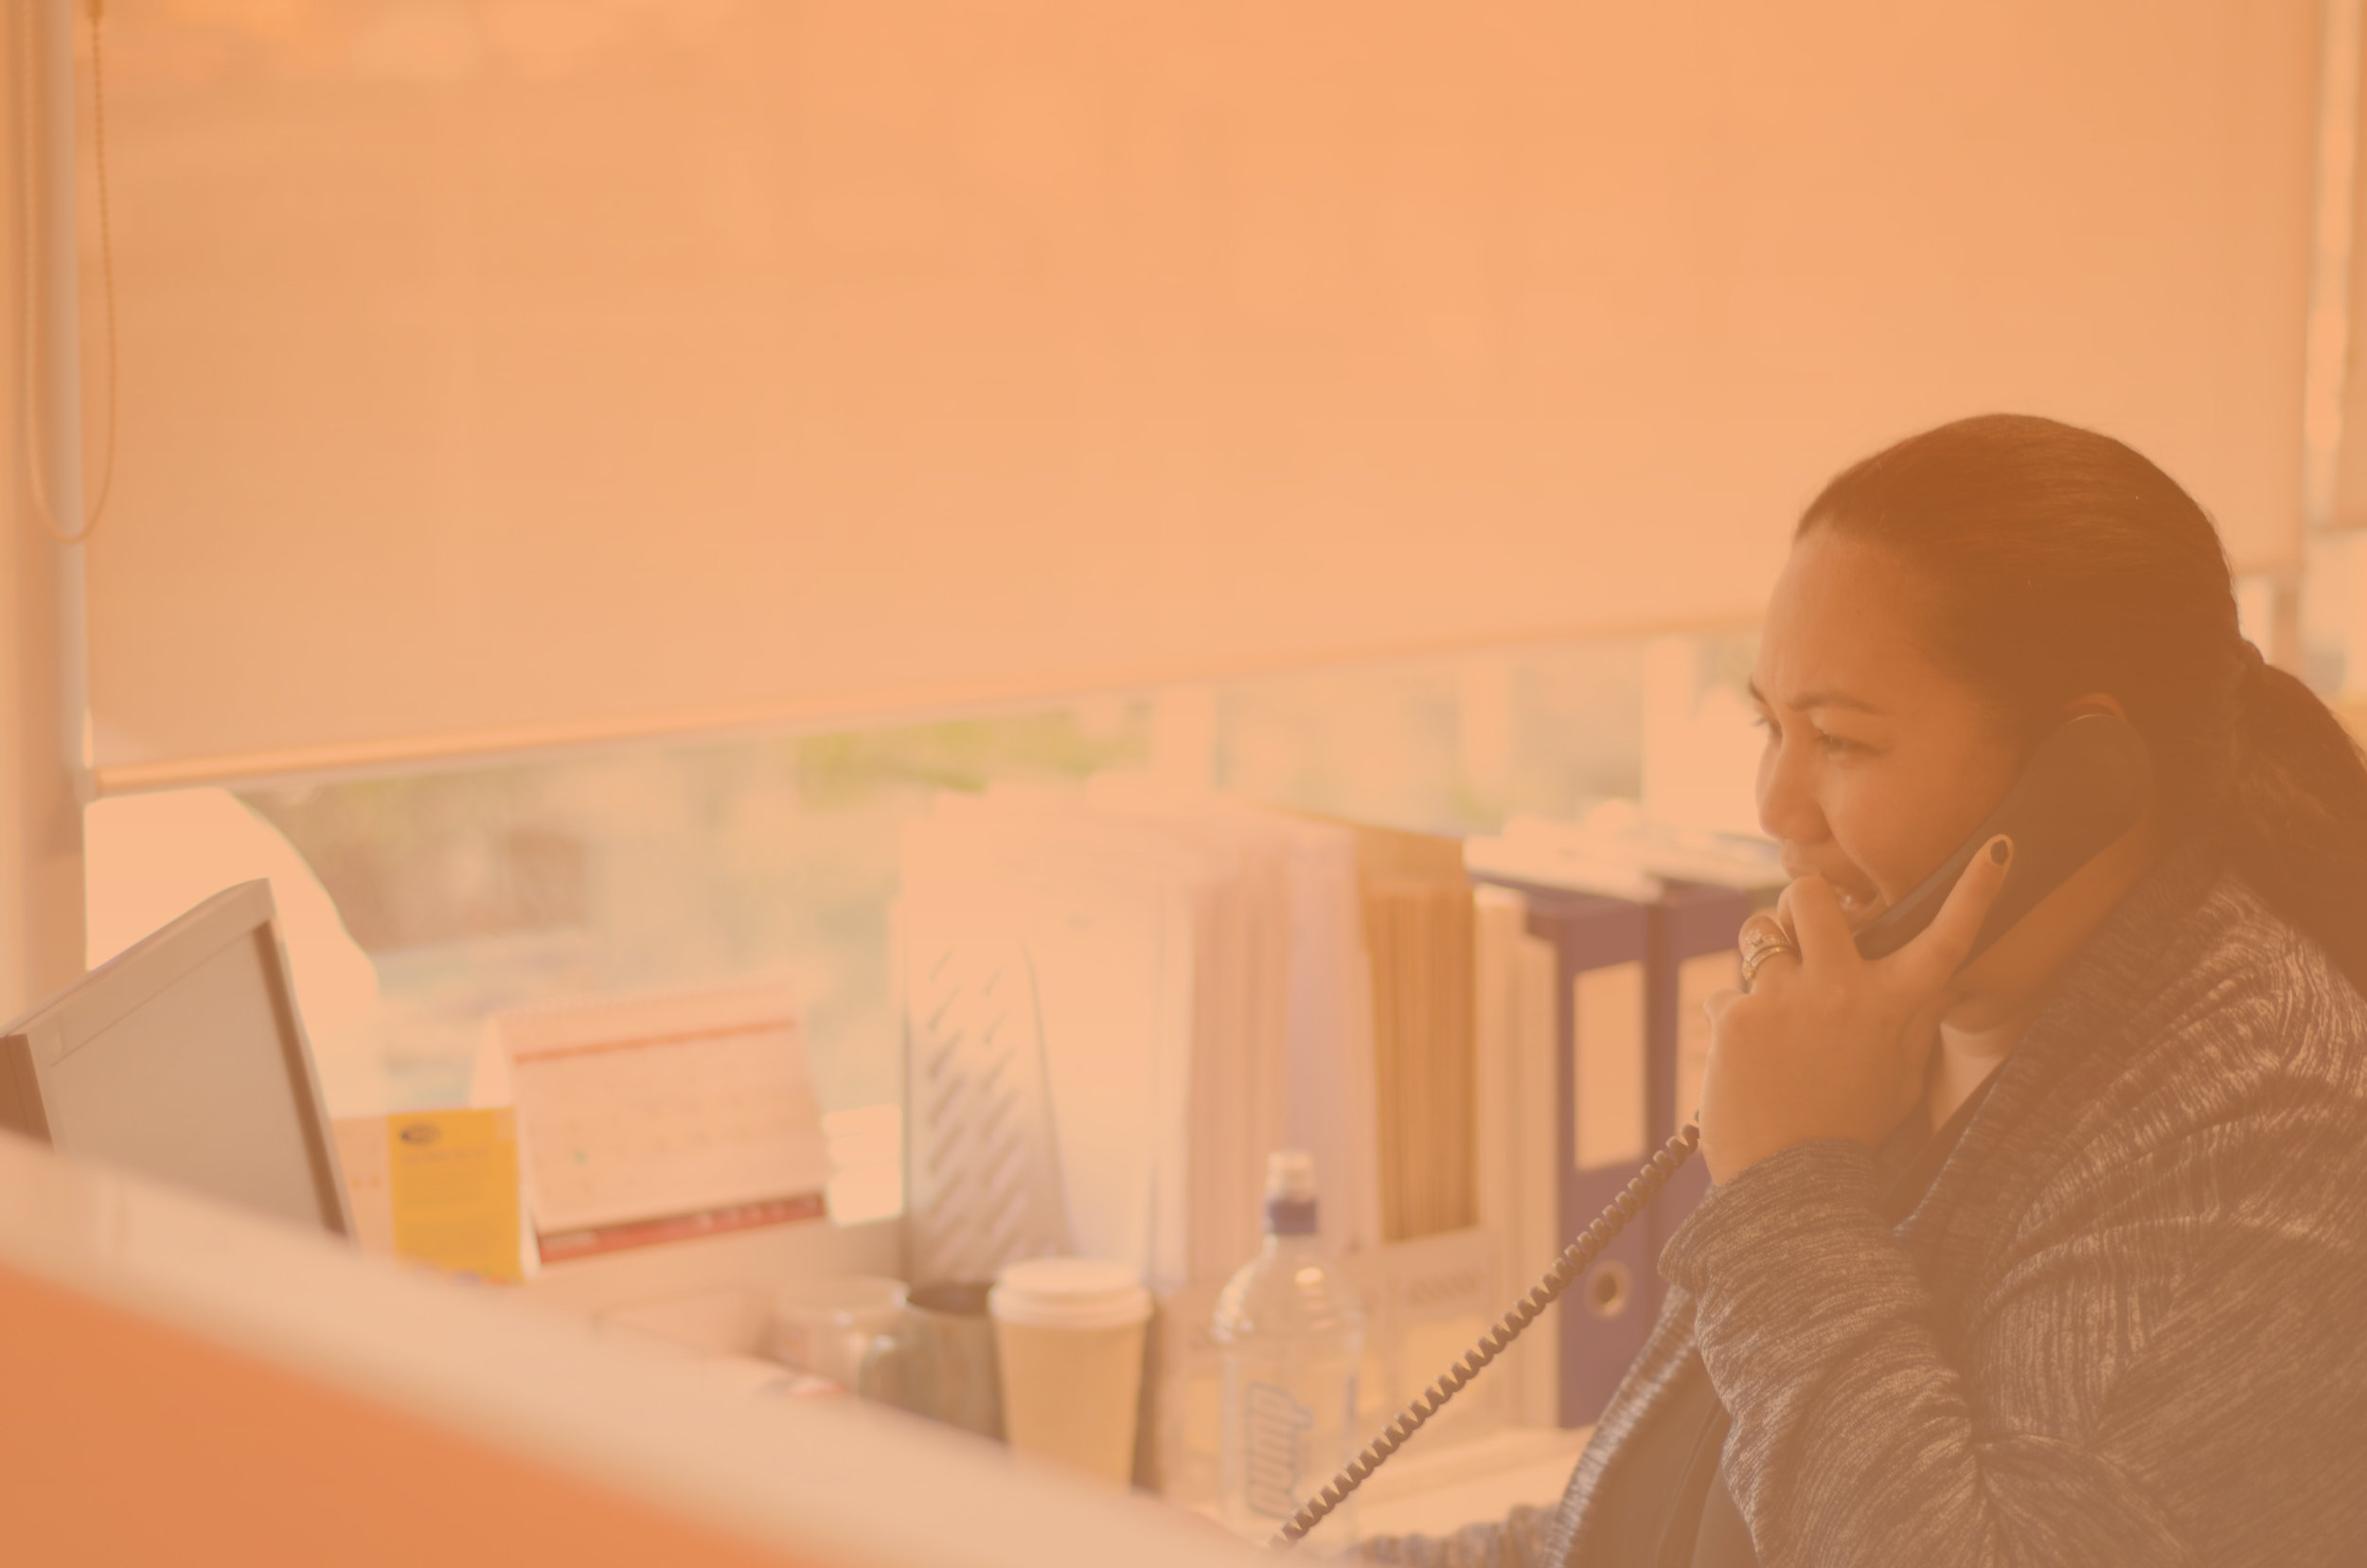 Dataprint : Demand different   Transactional communications that go beyond the everyday   WORK WITH US